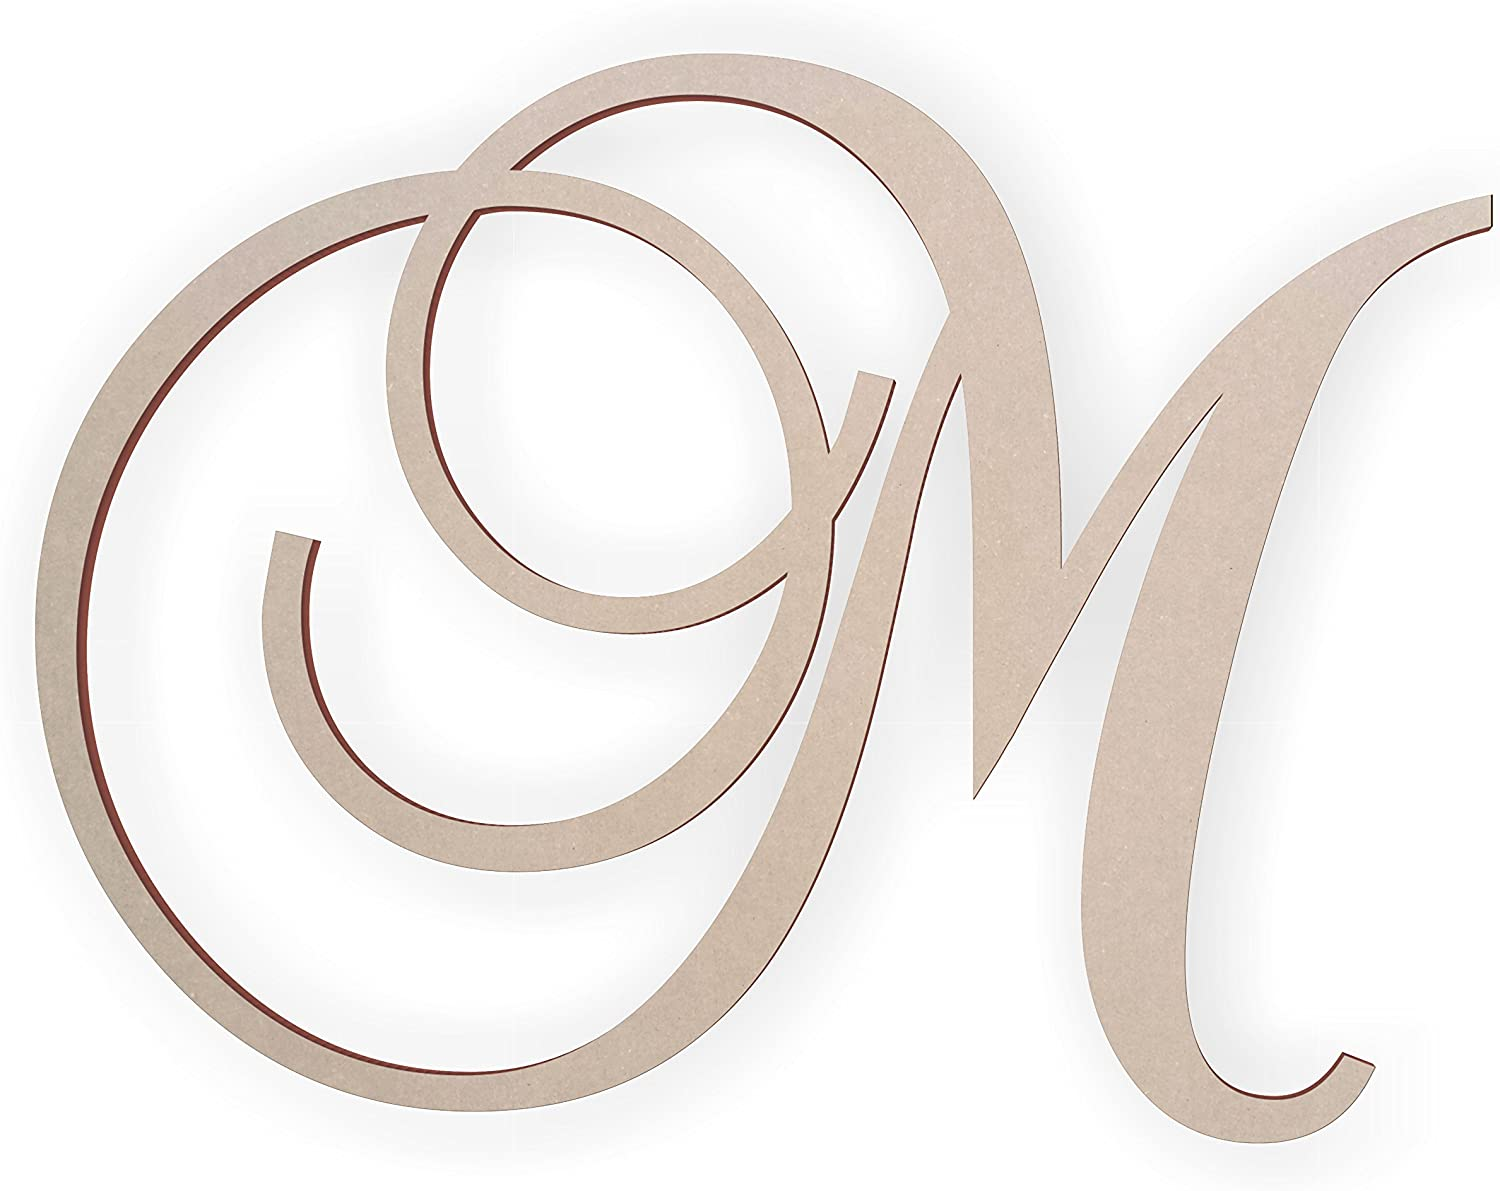 Jess and Jessica Wooden Letter M, Wooden Monogram Wall Hanging, Large Wooden Letters, Cursive Wood Letter